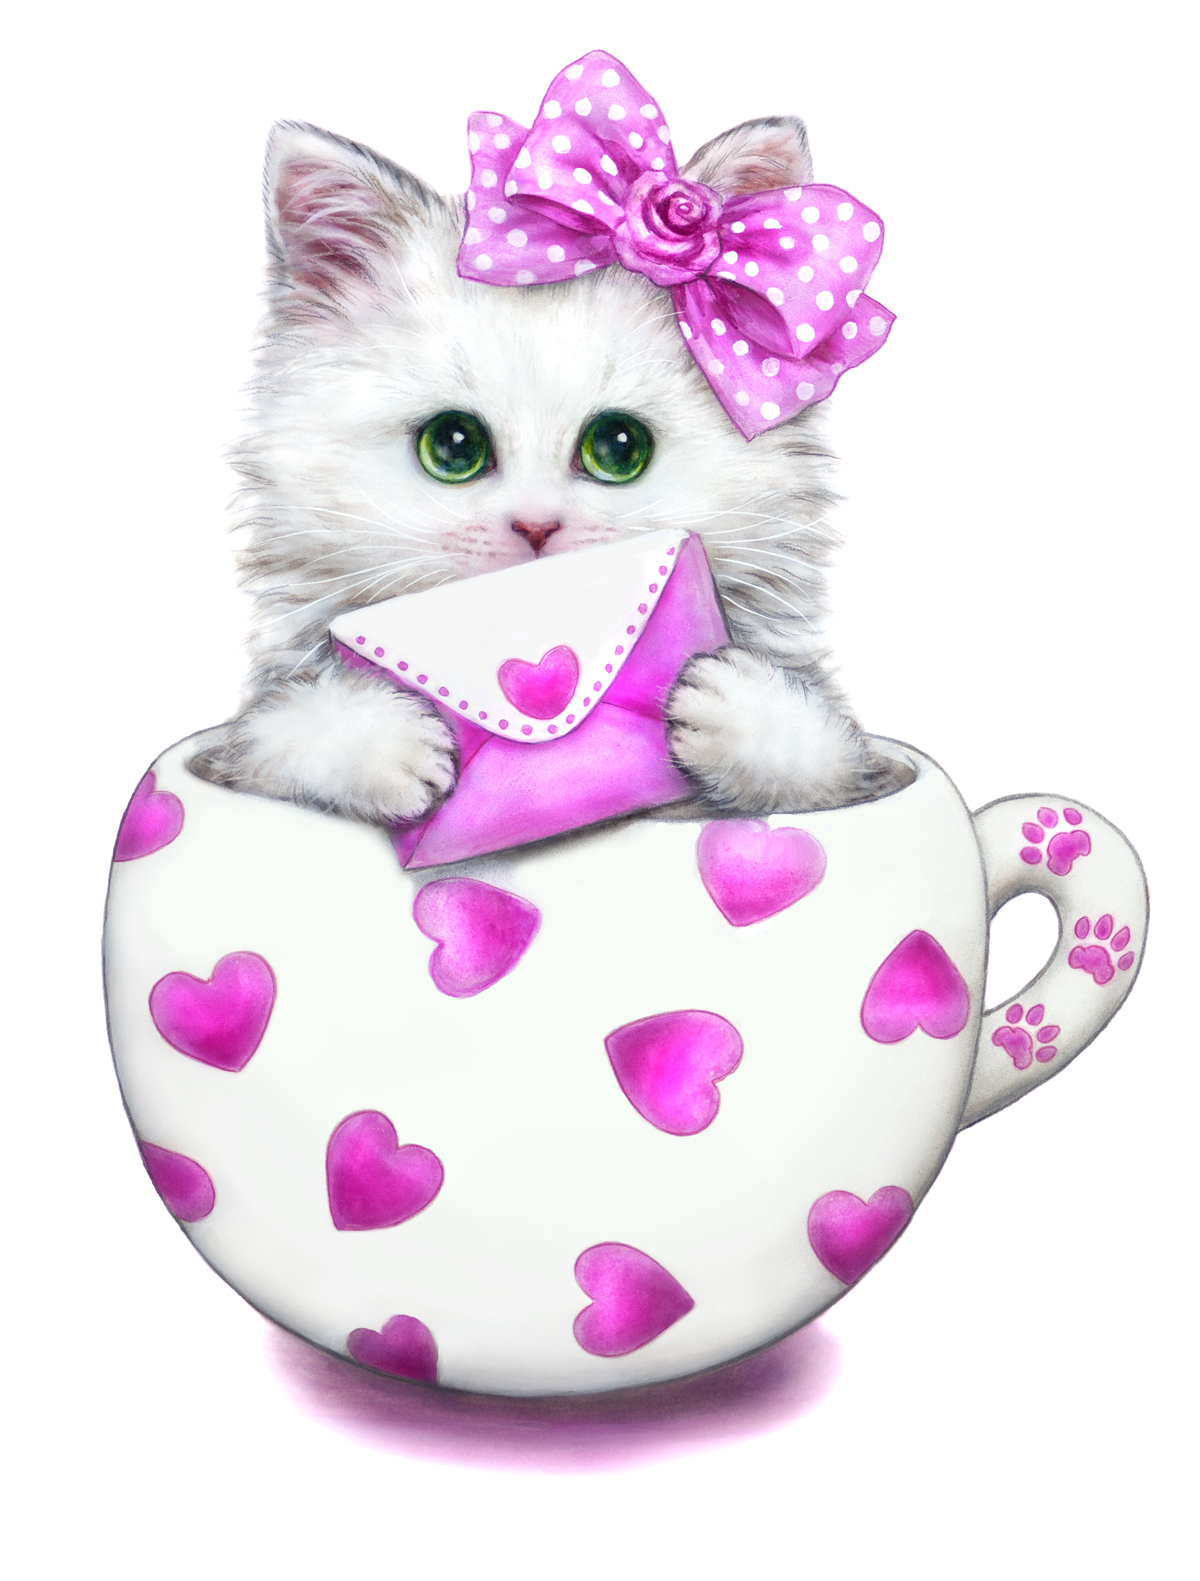 KITTENS clipart pink cat Ak0 BY great OUR VISIT